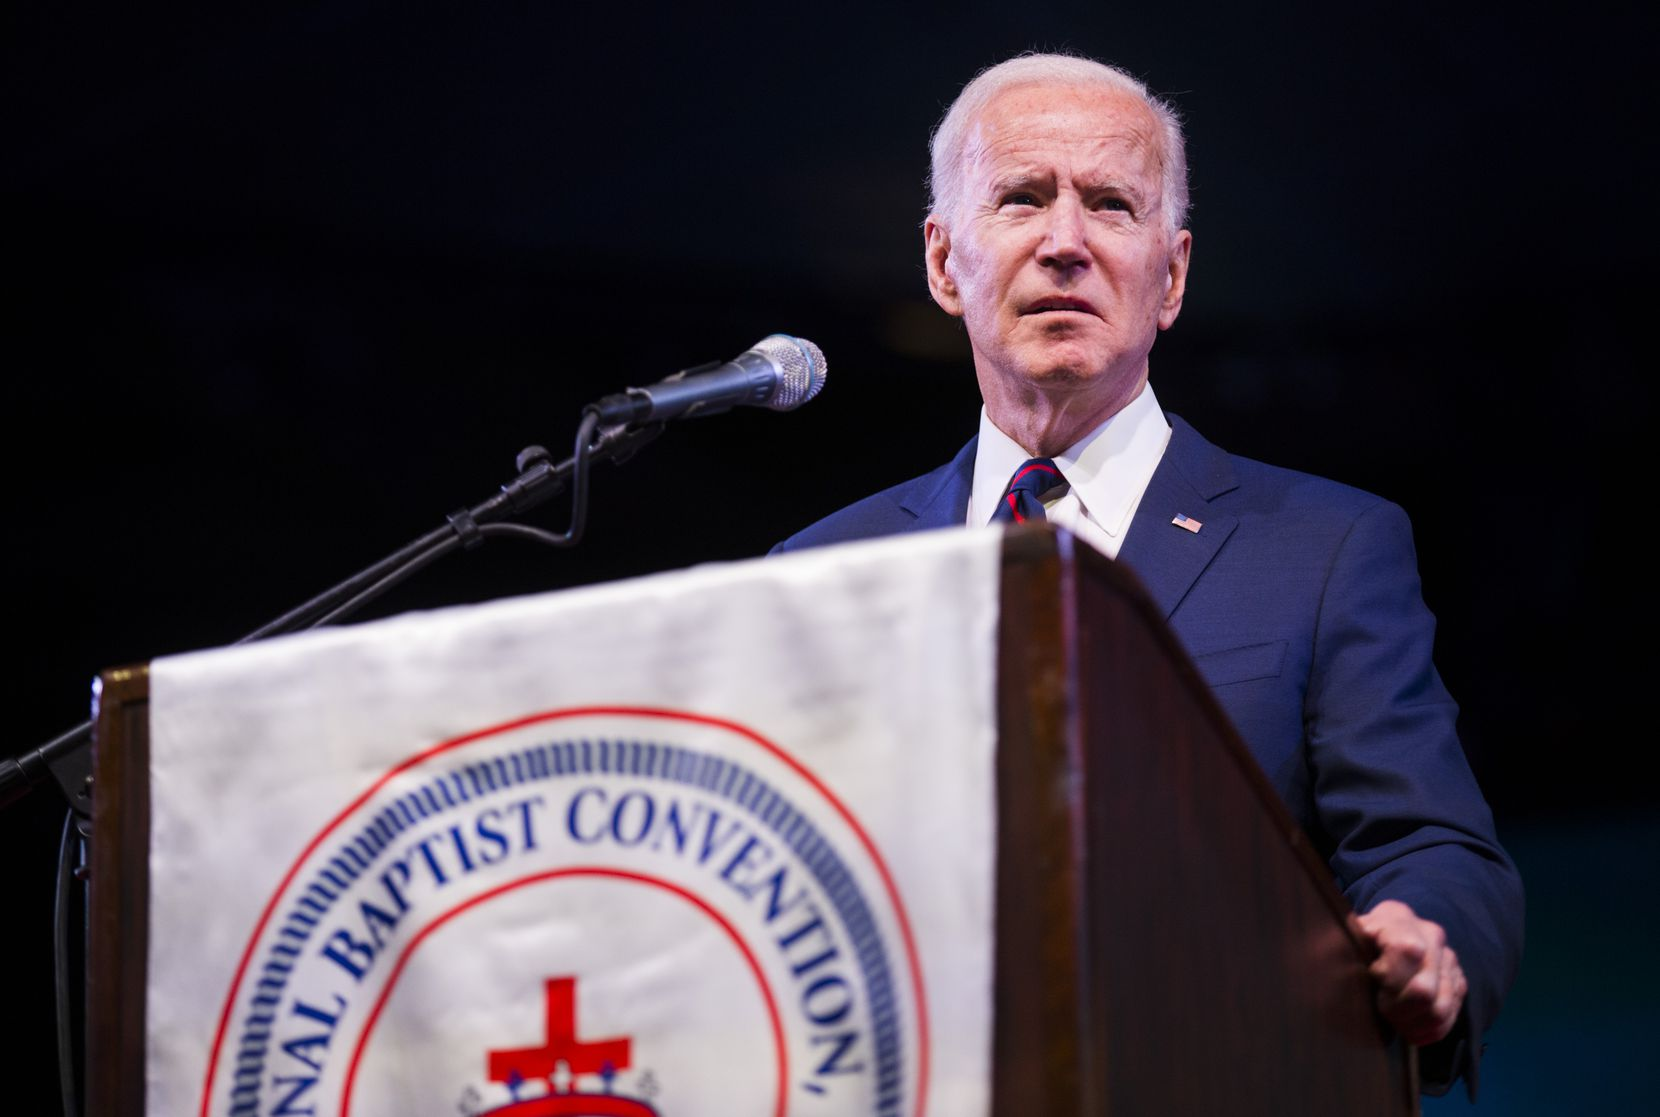 Former Vice President and Presidential Candidate Joe Biden speaks at the National Baptist Convention, USA, Inc. on Wednesday, January 15, 2020 at the Arlington Convention Center in Arlington, Texas. (Ashley Landis/The Dallas Morning News)